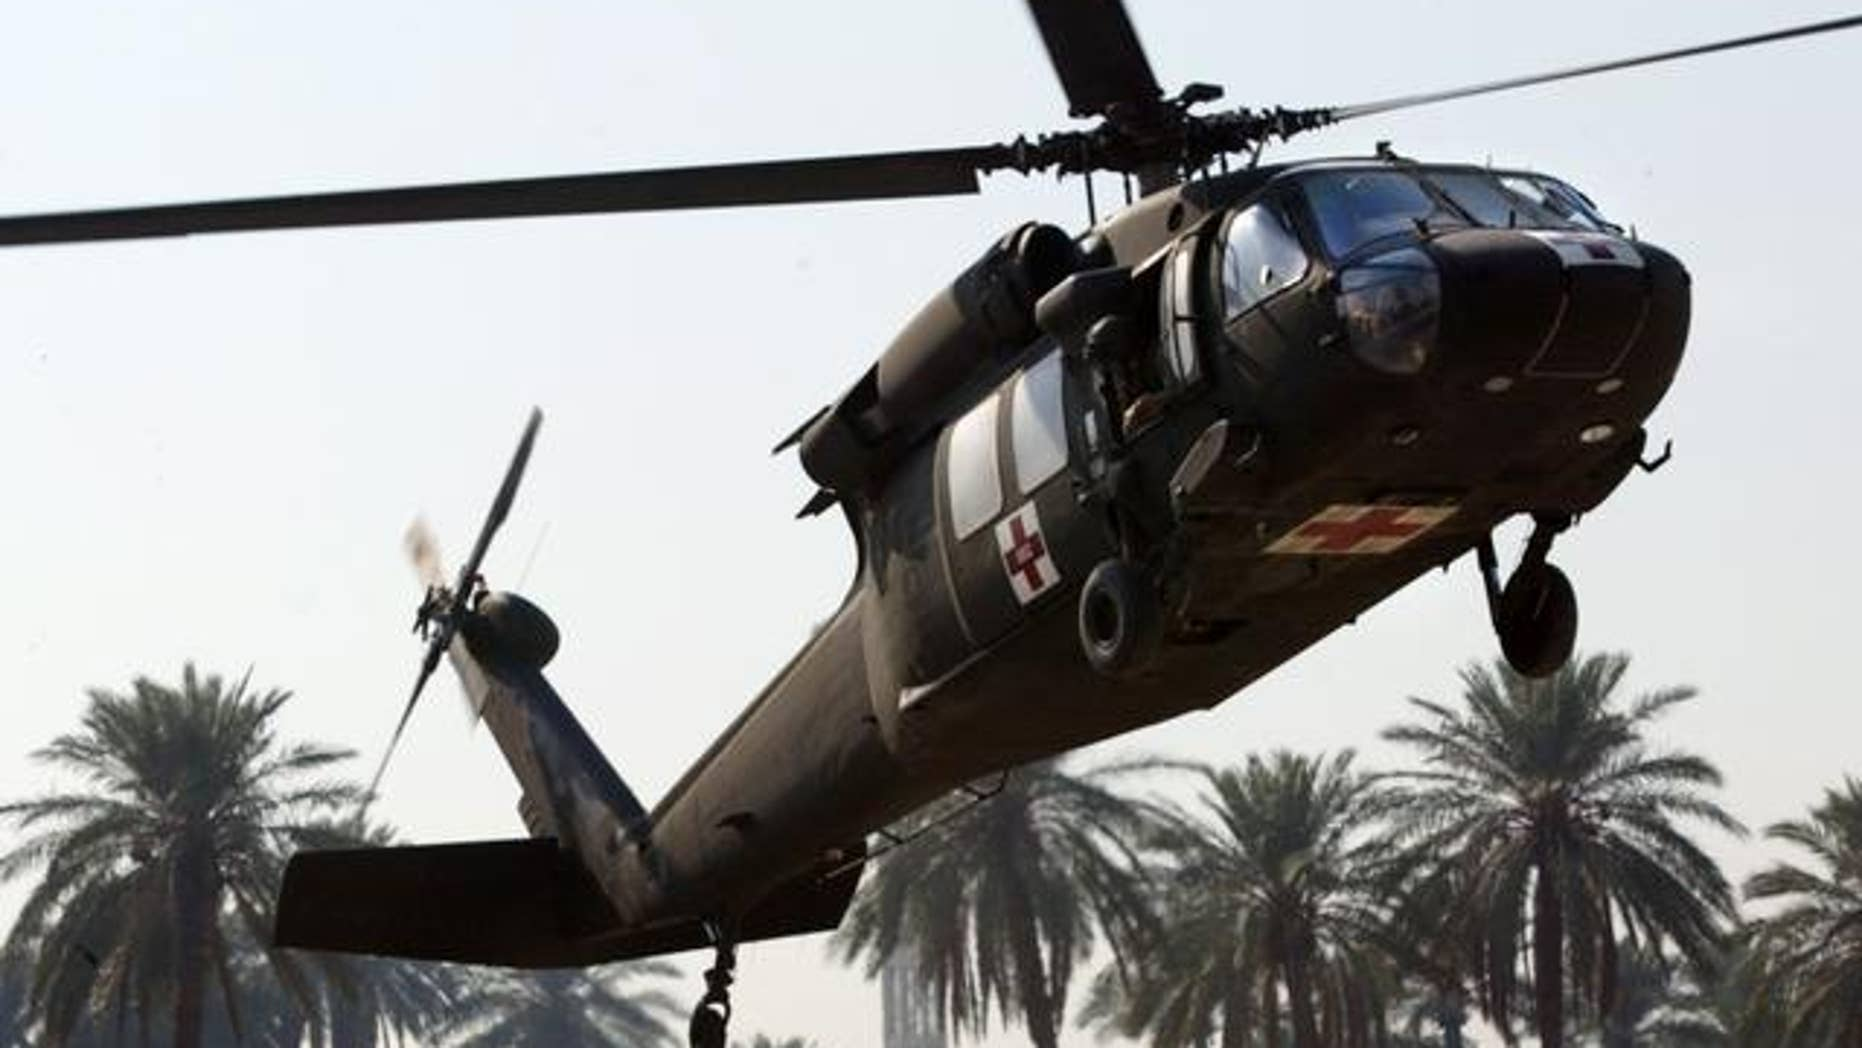 A U.S. Army Blackhawk medevac helicopter arrives with wounded soldiers at the 31st Combat Support Hospital in Baghdad, Iraq Tuesday, Nov. 9, 2004. (AP Photo/John Moore)